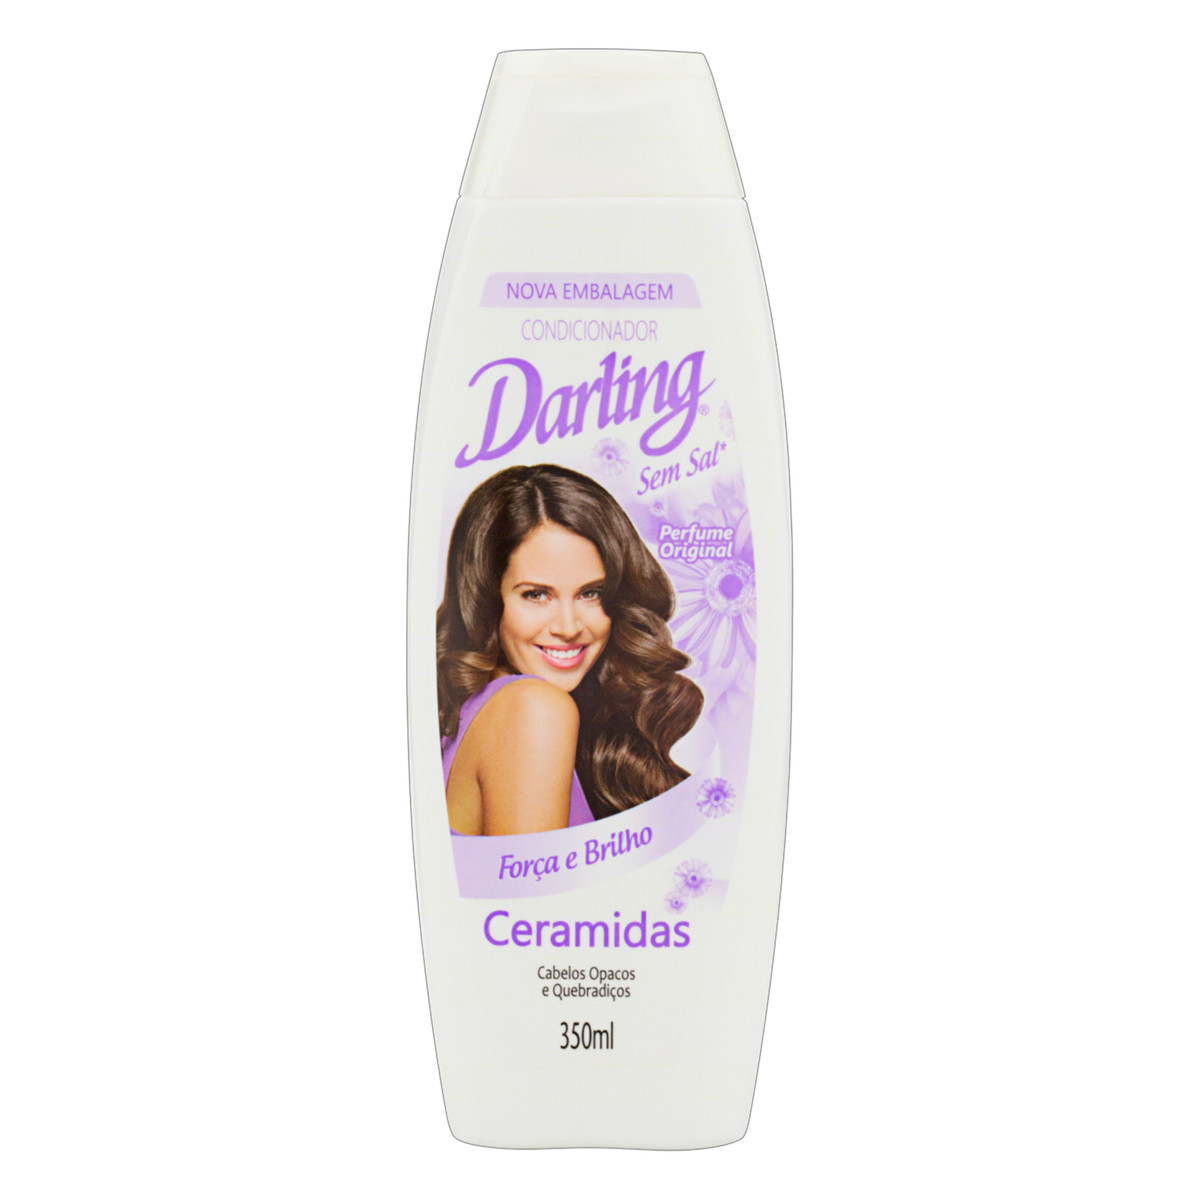 Condicionador DARLING Ceramidas 350ml